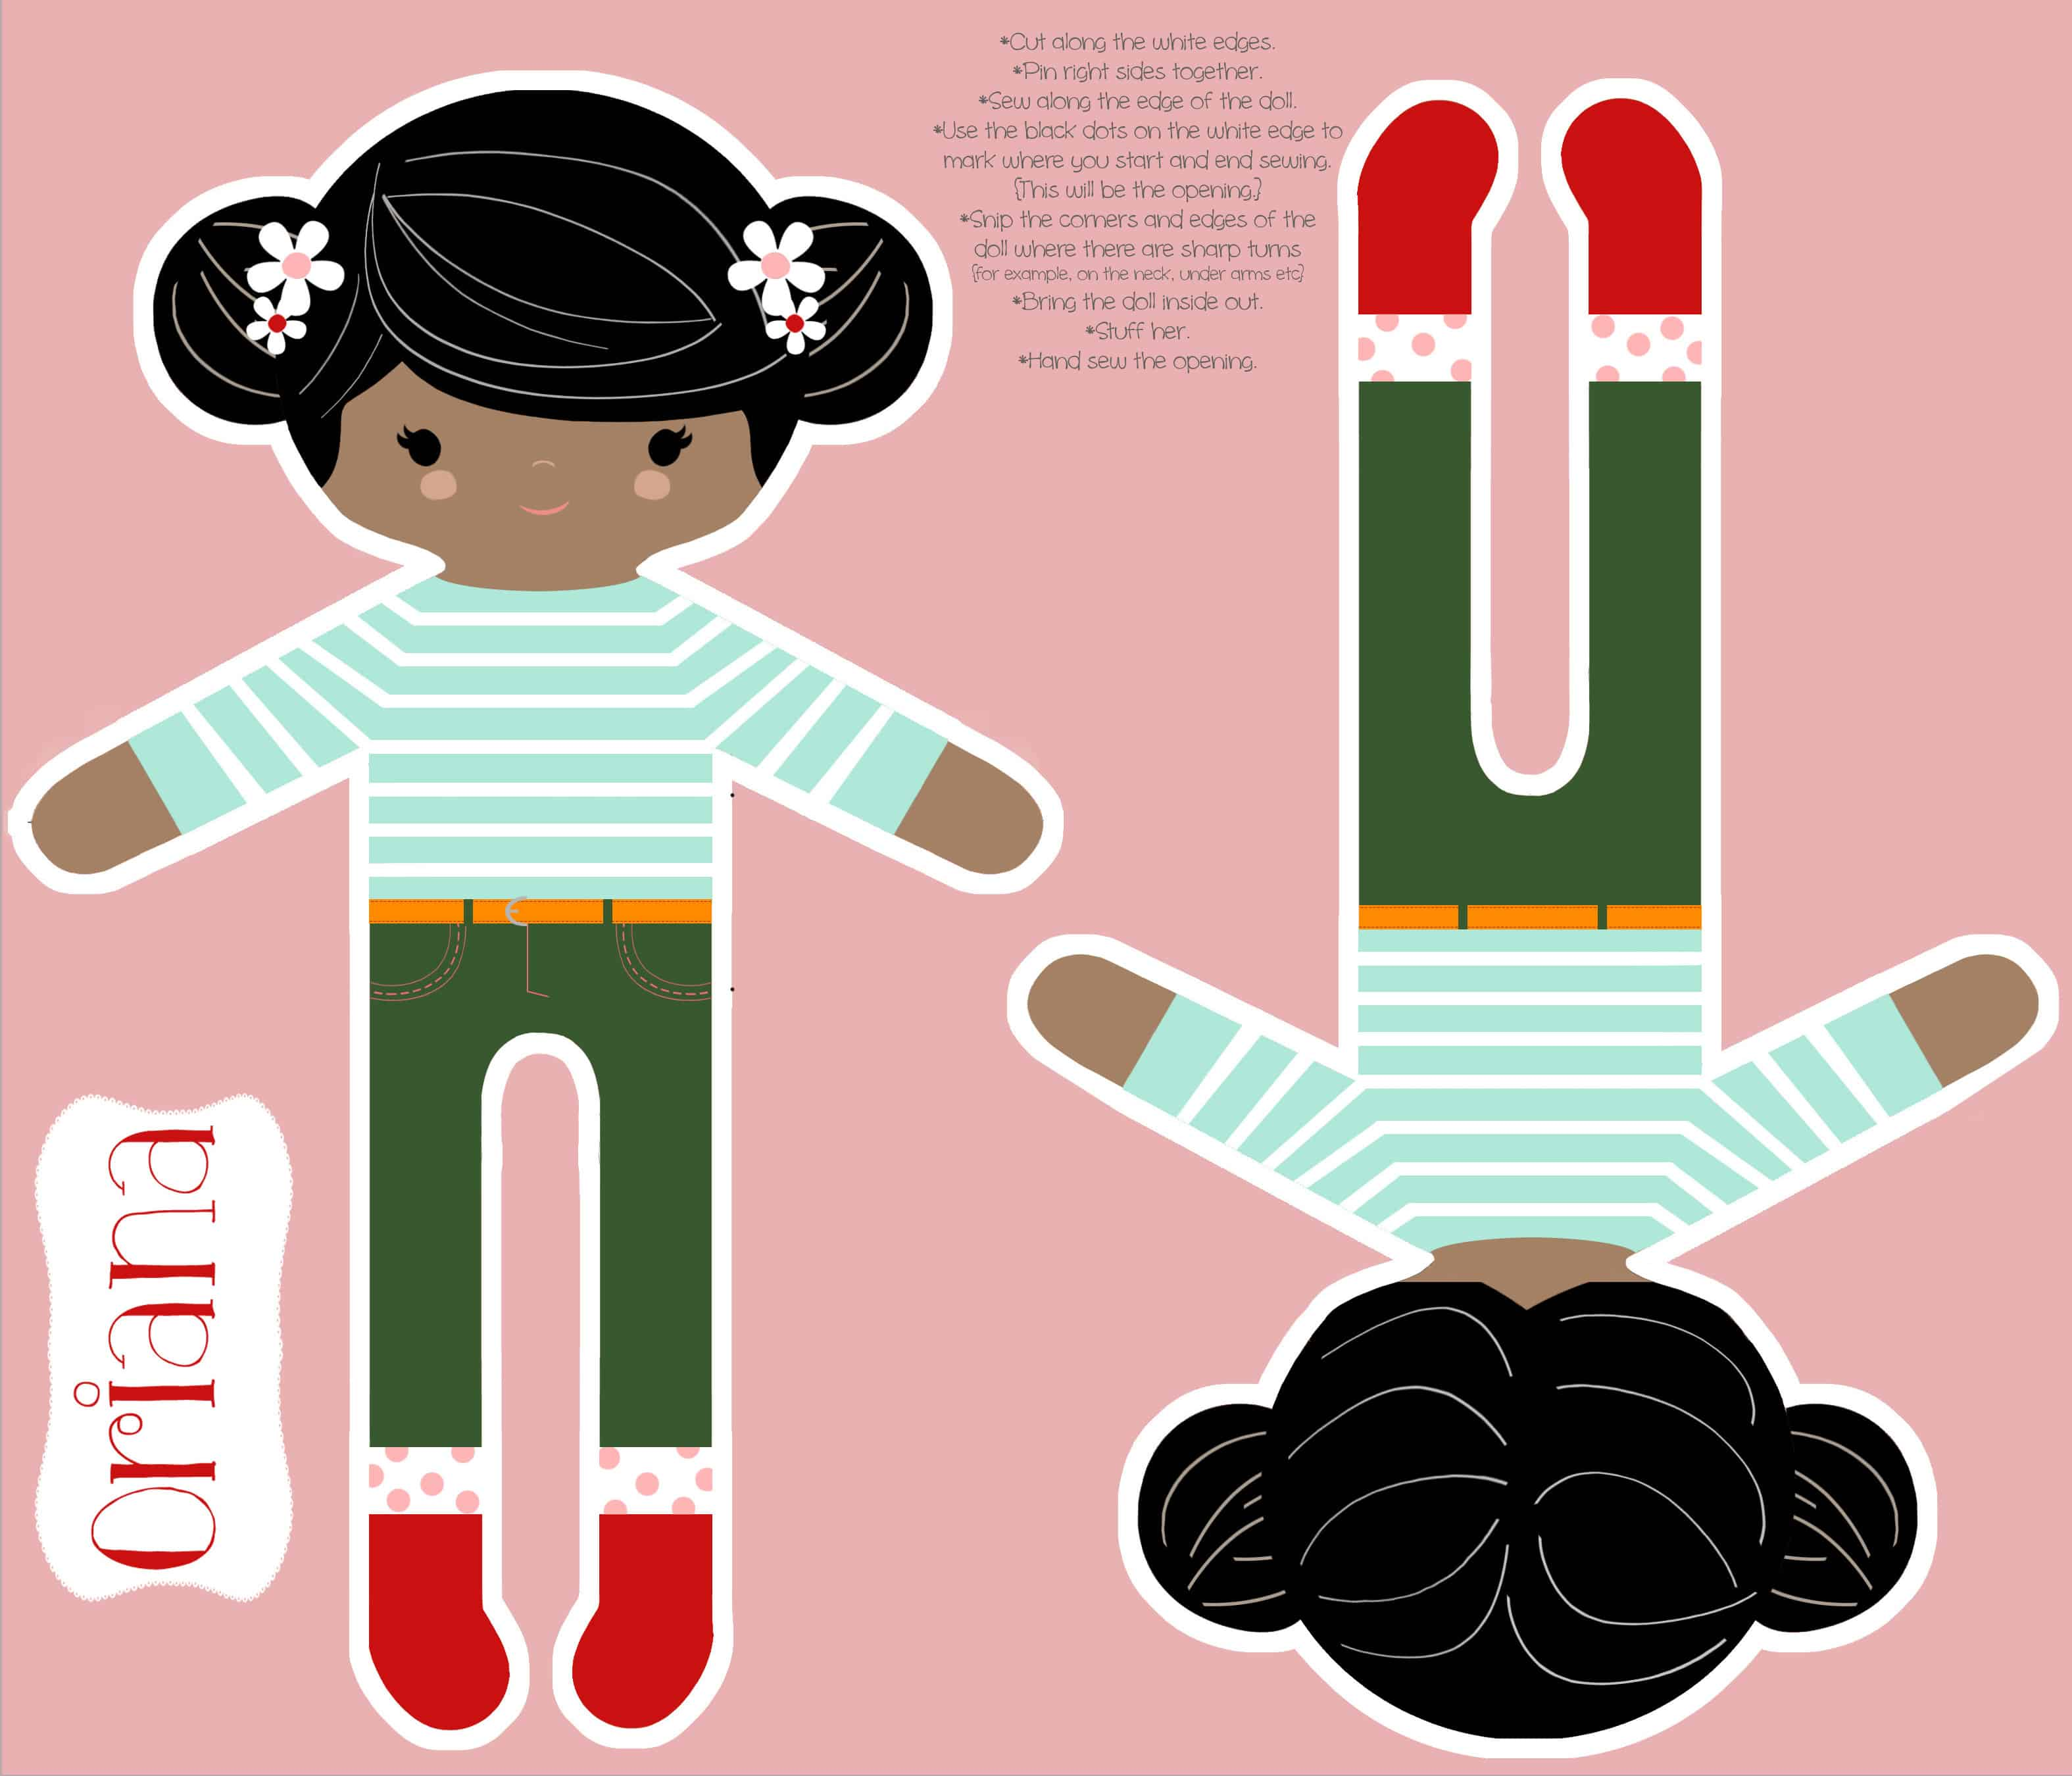 DIY: Customize Your Own Cut and Sew Doll | Spoonflower Blog